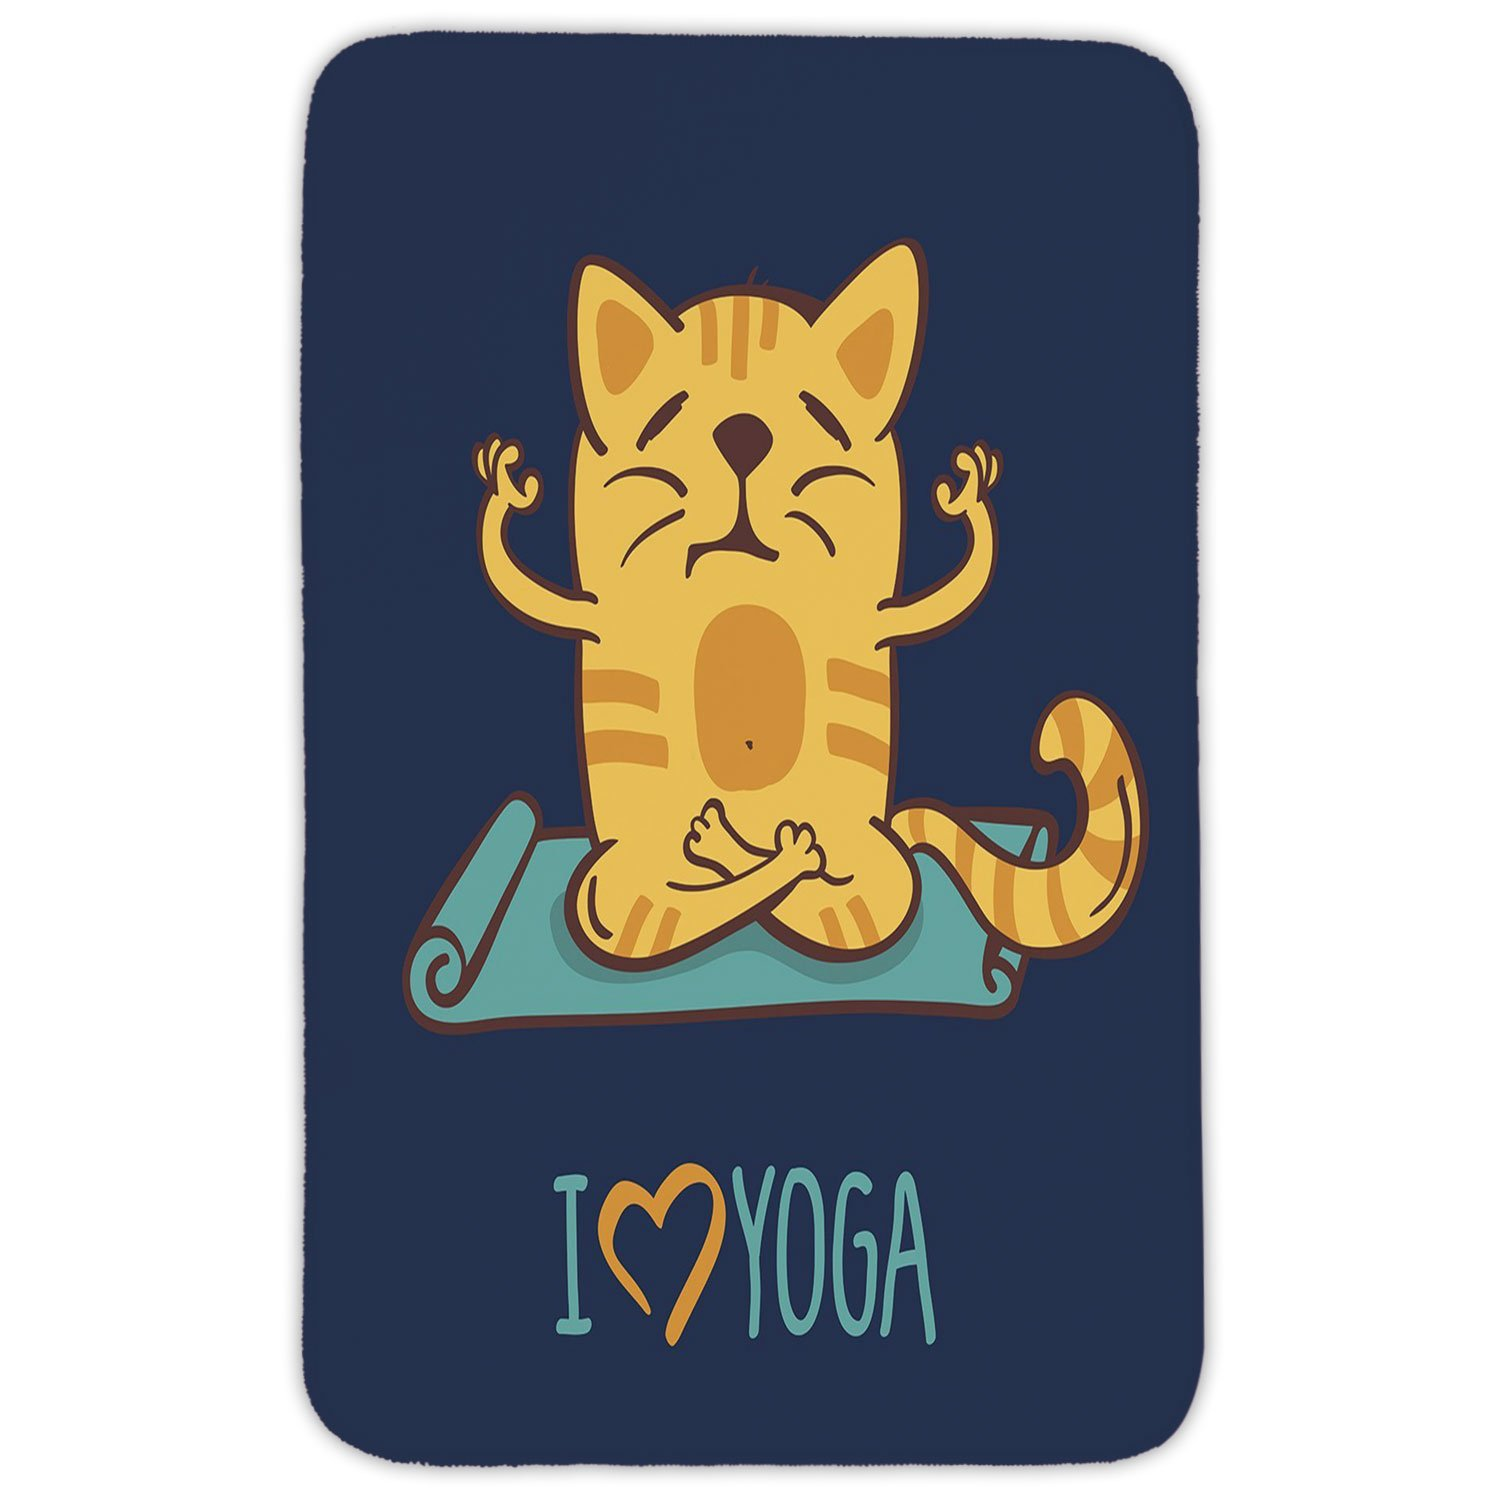 Rectangular Area Rug Mat Rug,Animal,I Love Yoga Theme Cute Cartoon Cat Exercise Mat Lotus Position,Dark Blue Light Blue Yellow,Home Decor Mat with Non Slip Backing